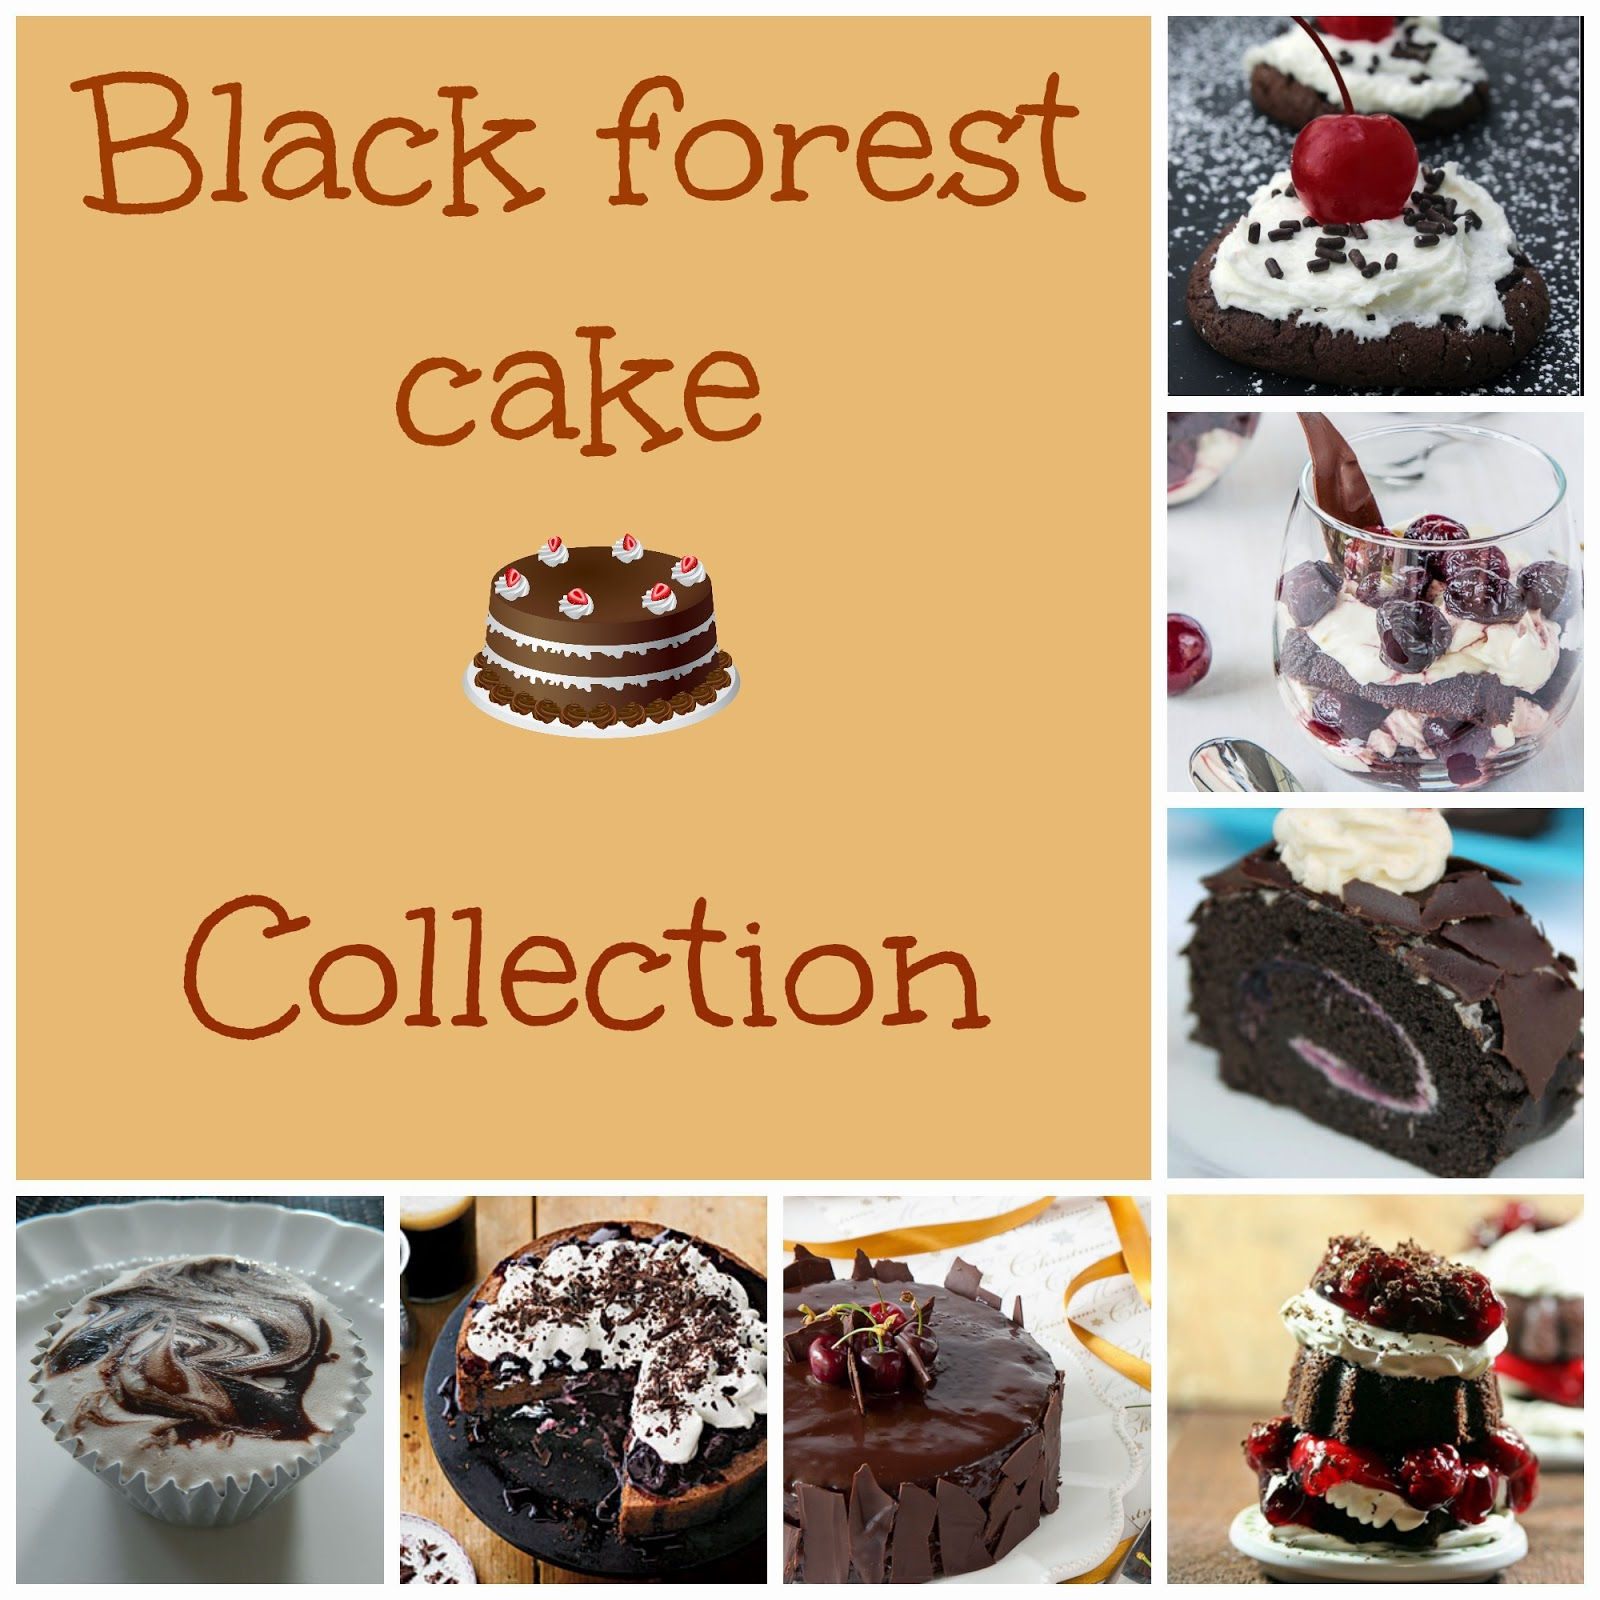 Black forest cake collection